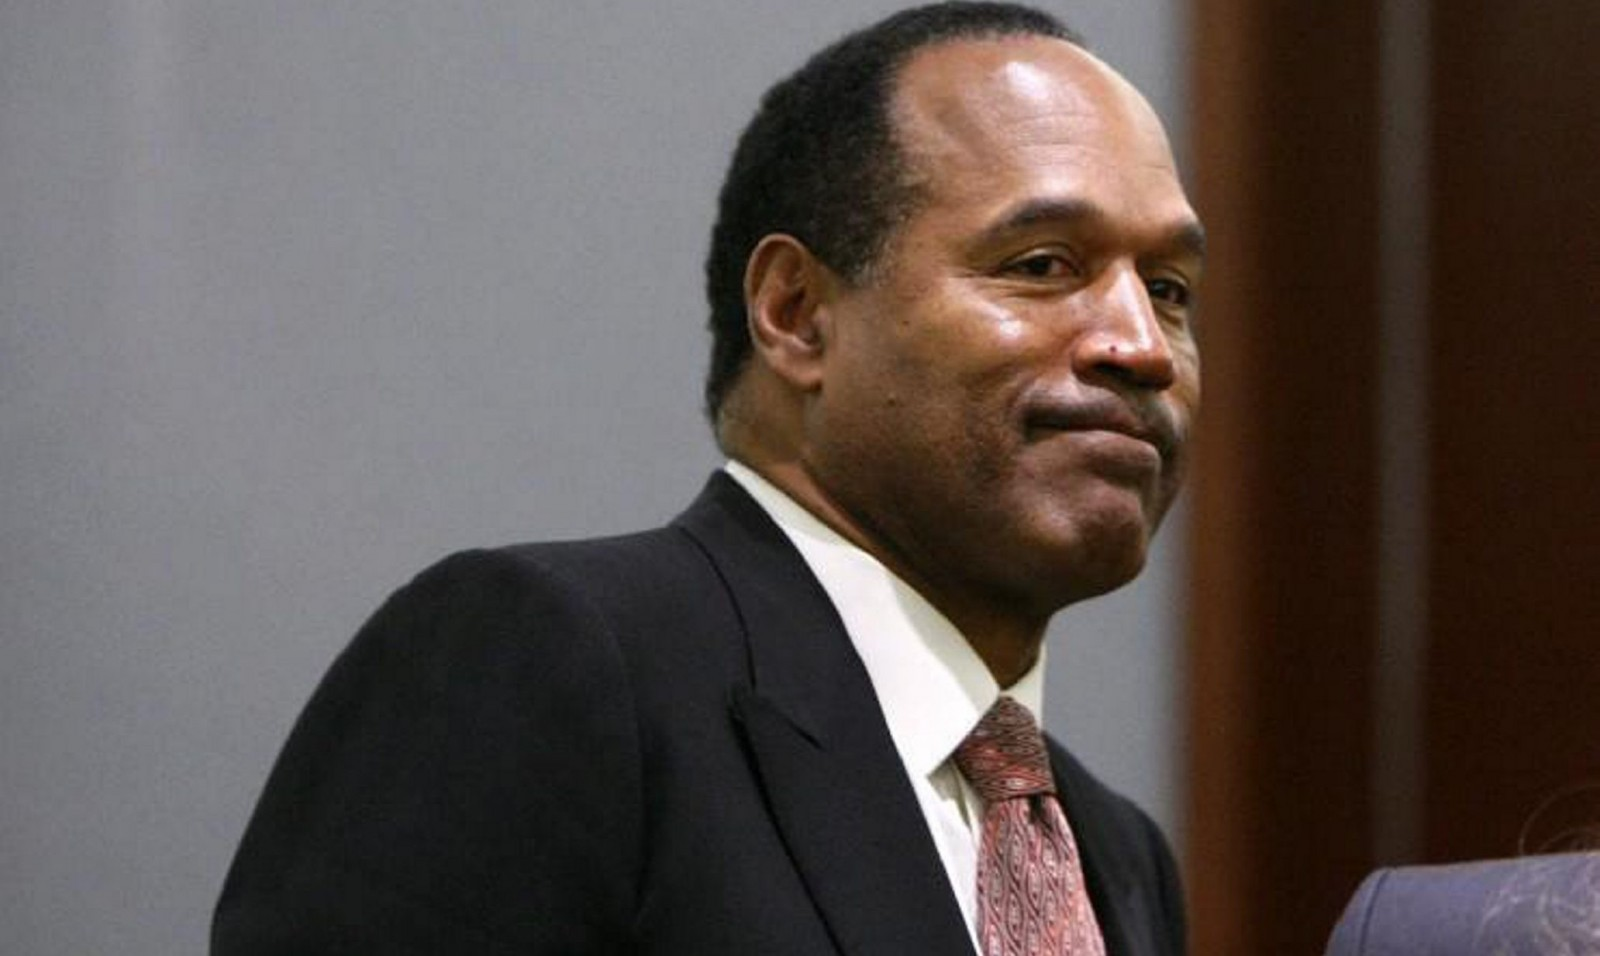 On a call to The News in 2005, O.J. Simpson spoke to Henry Davis to discuss a previous story about a Lockport home. (Getty Images)